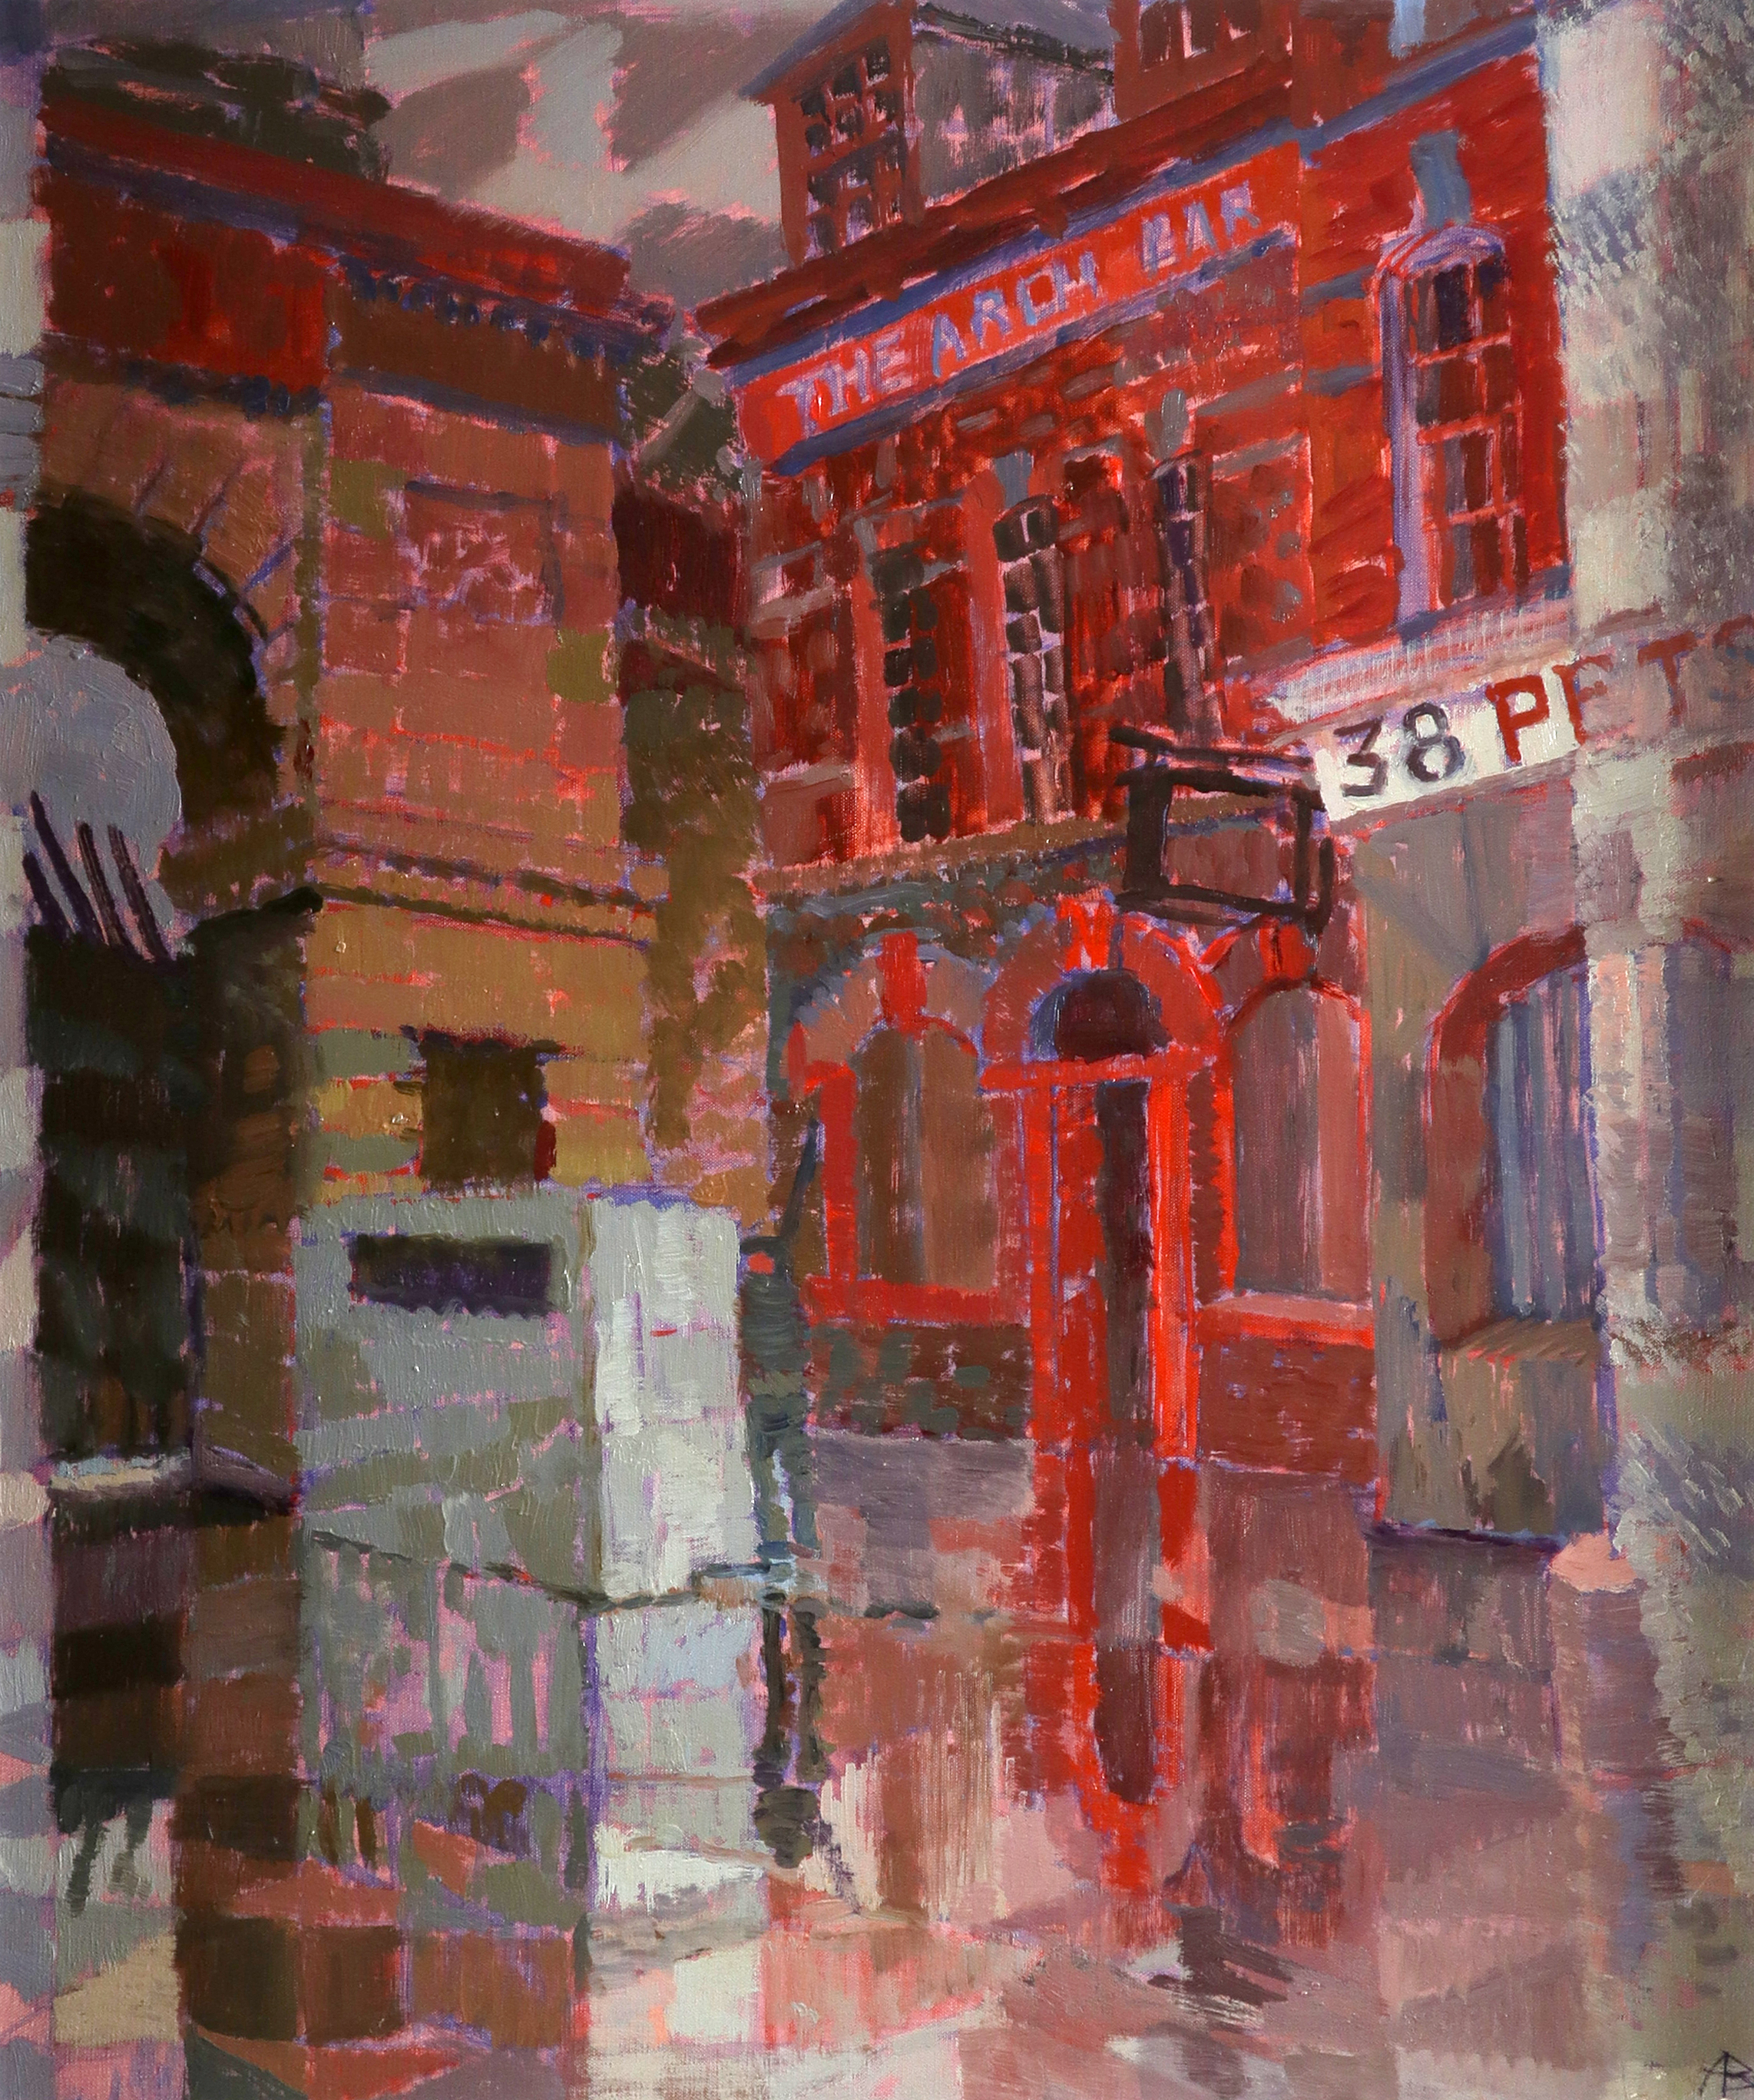 ‡Alicia Boyle (Irish 1908-1997) Bishop Gate, Derry Signed with initials AB (lower right), signed